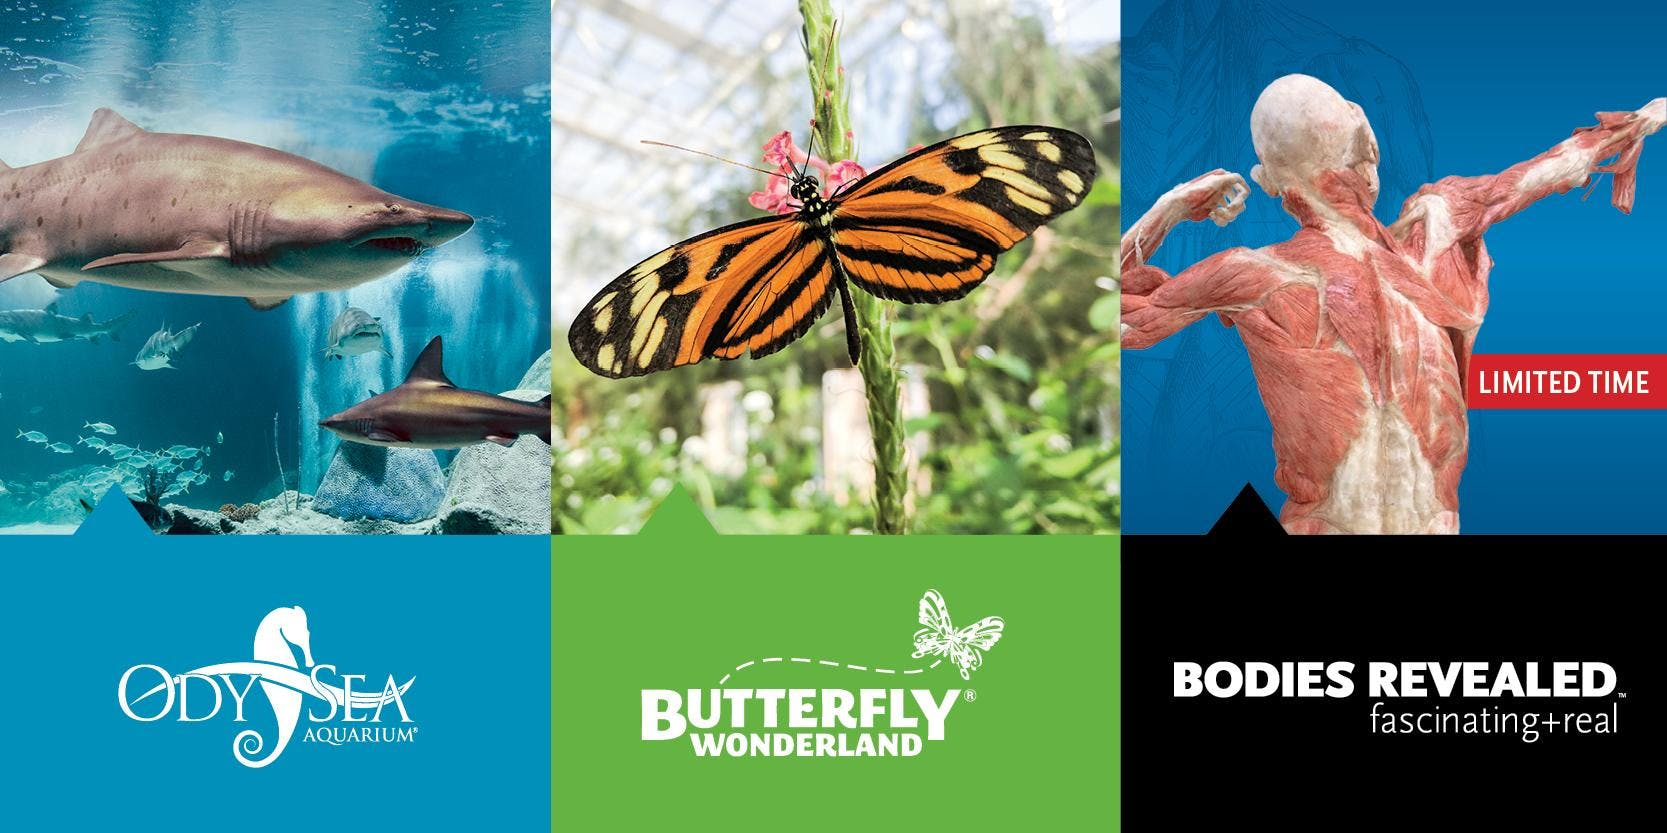 Educator Open House - August 21st, 2018 - OdySea Aquarium, Butterfly Wonderland & Bodies Revealed